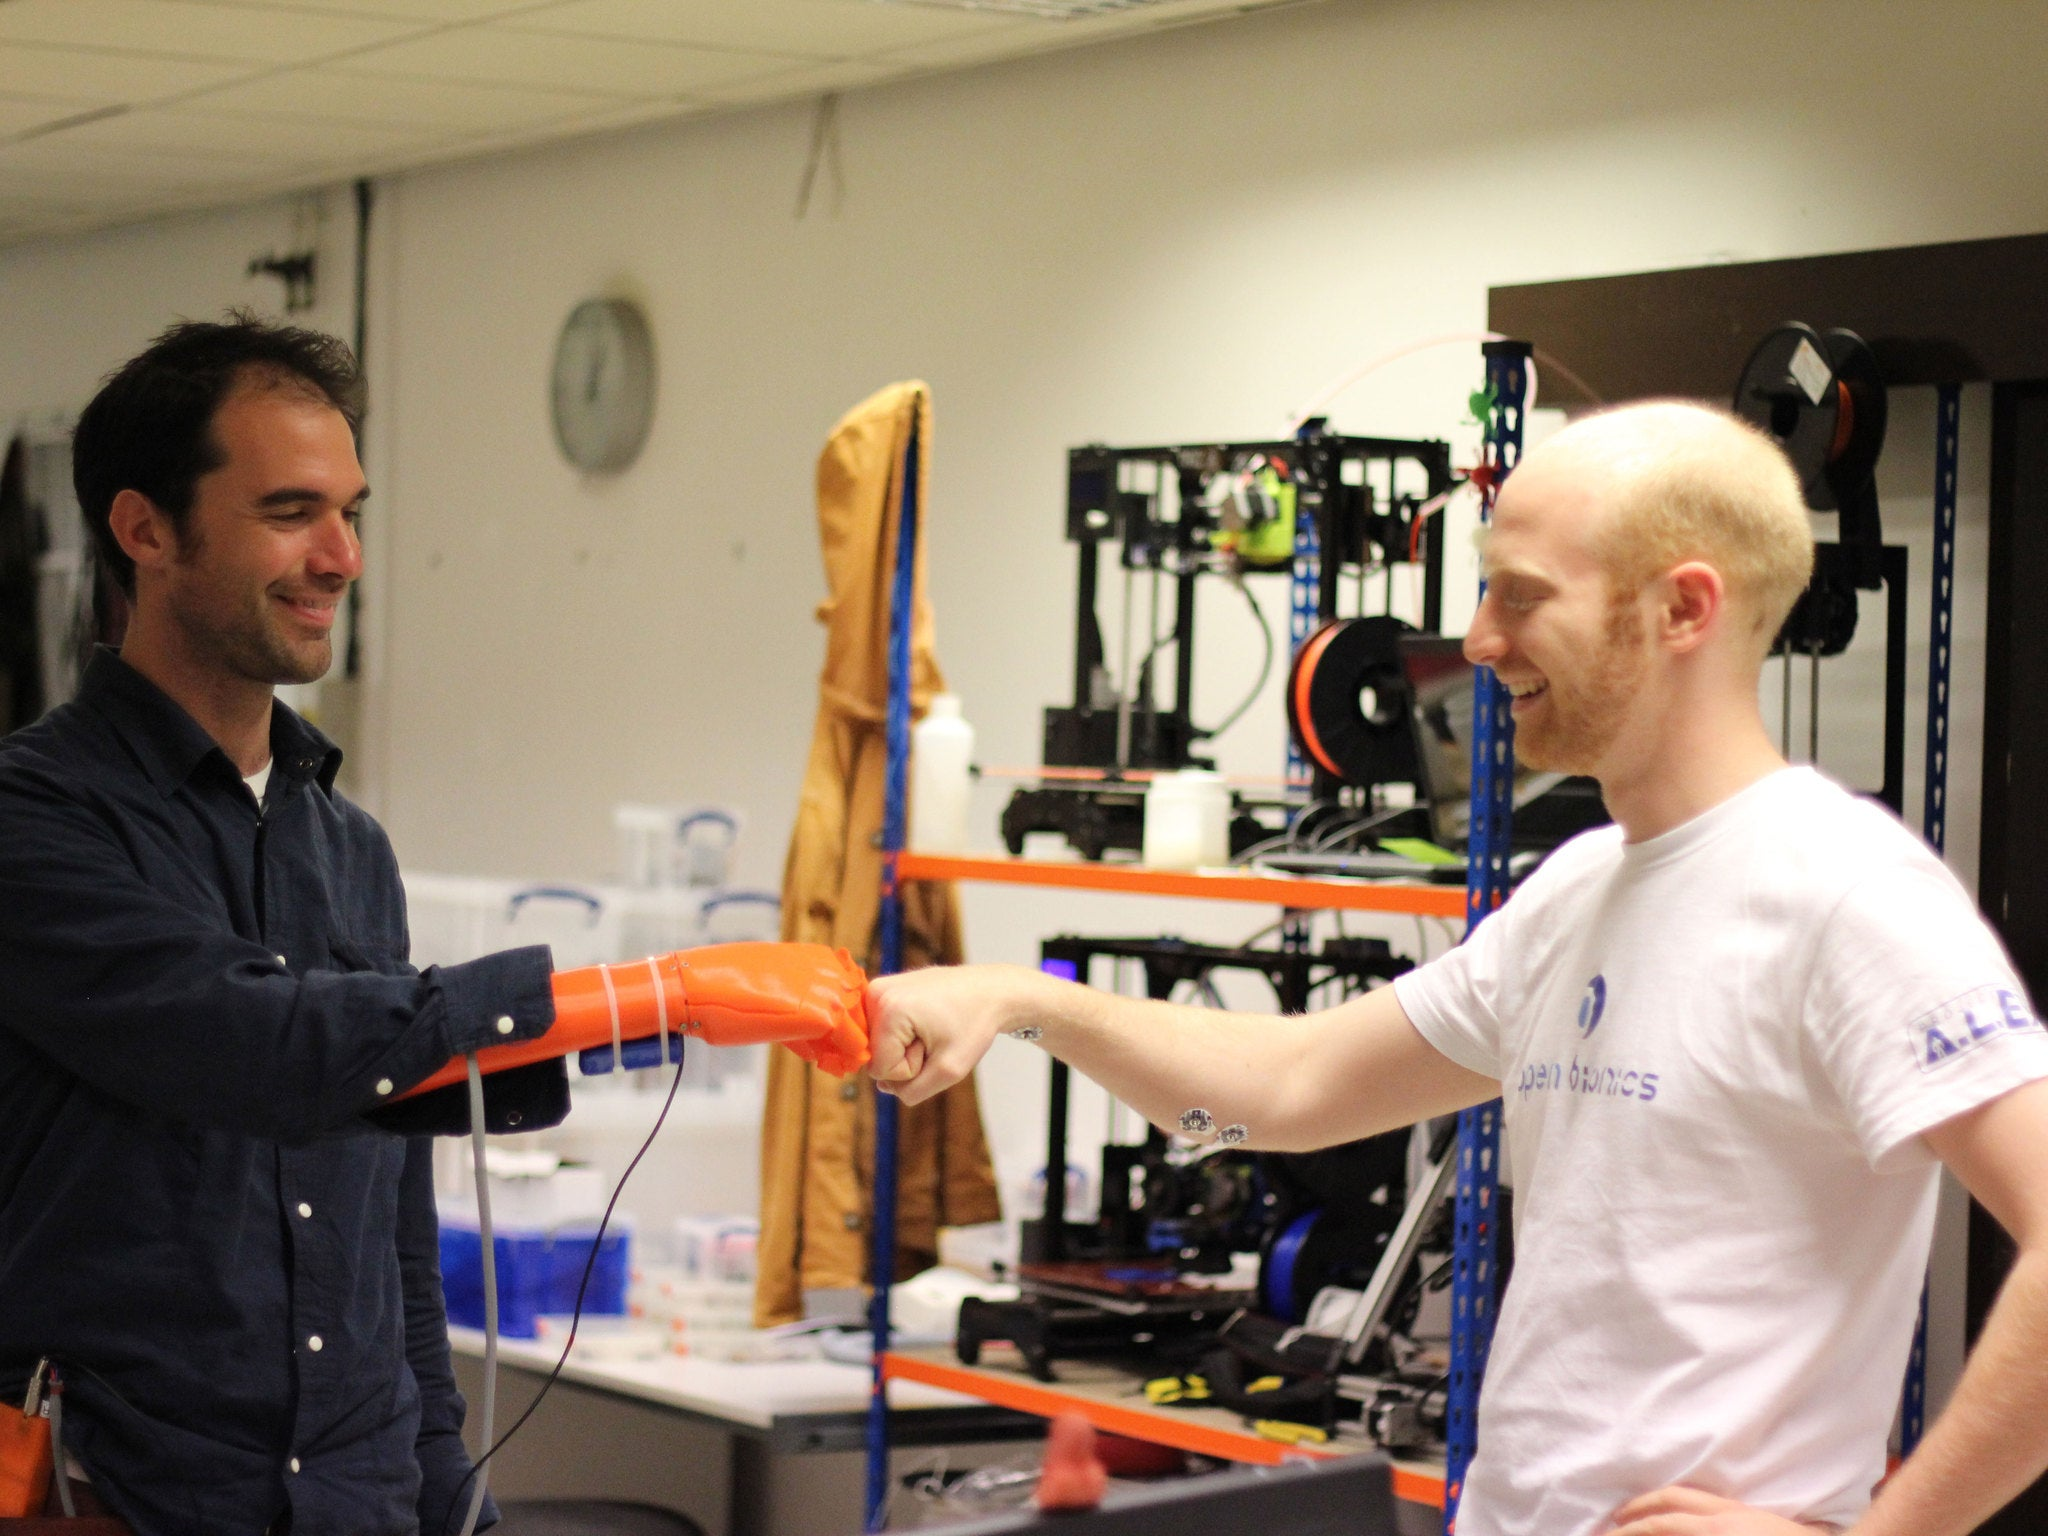 Cheap 3d printed bionic hand wins james dyson award could bring cheap 3d printed bionic hand wins james dyson award could bring robotic limbs to world the independent fandeluxe PDF